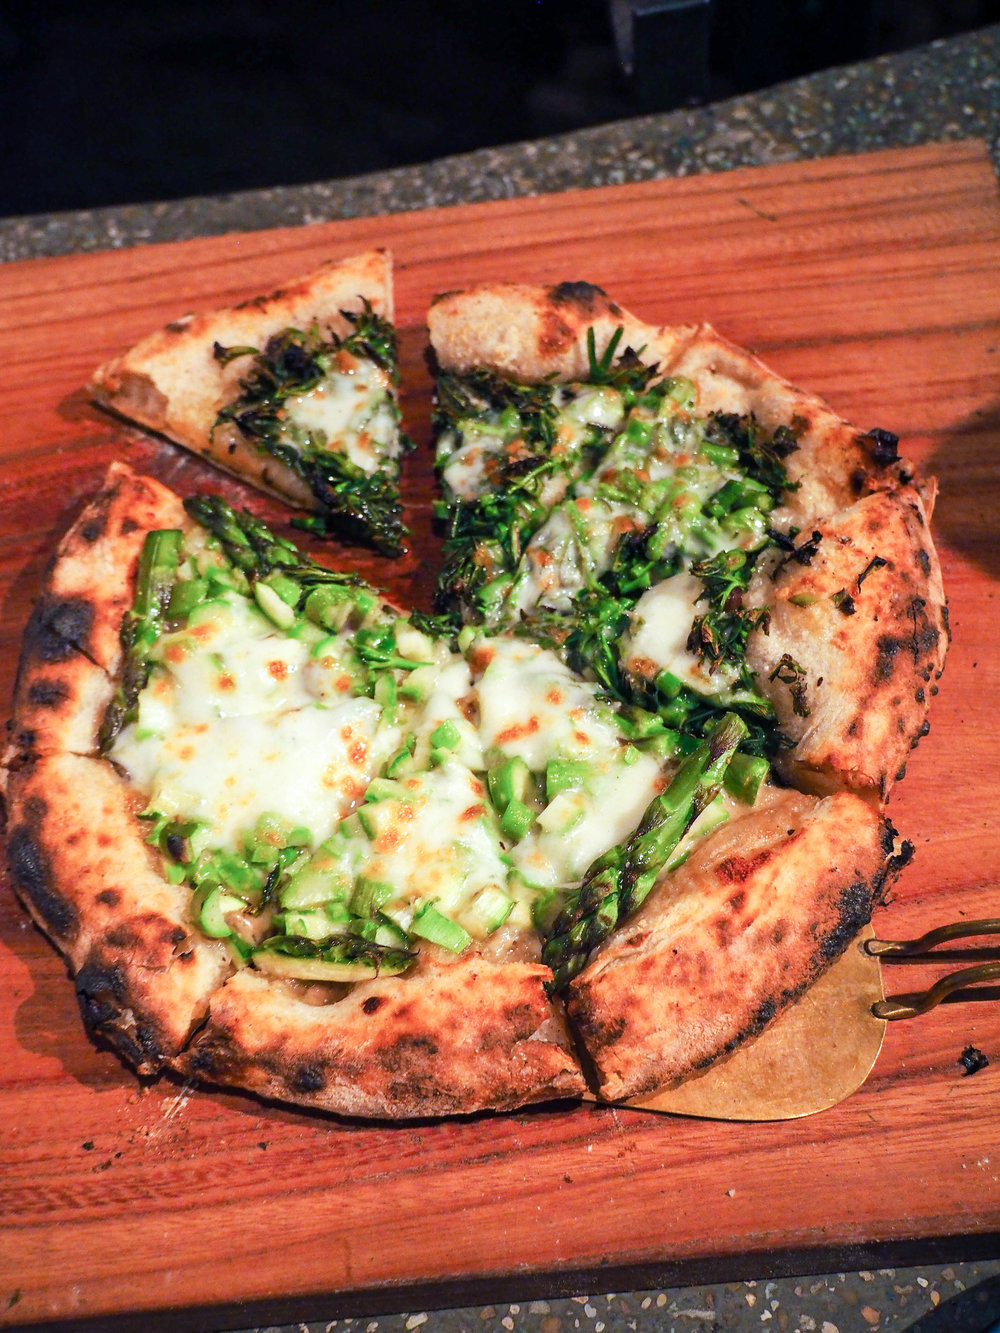 The BEST pizza I've ever eaten! He ferments his own starter to make the dough from locally grown wheat. Half was topped with anchovy paste, asparagus and mozzarella and the other half was topped with taranome, a bitter Asian green (I think it's also called angelica).